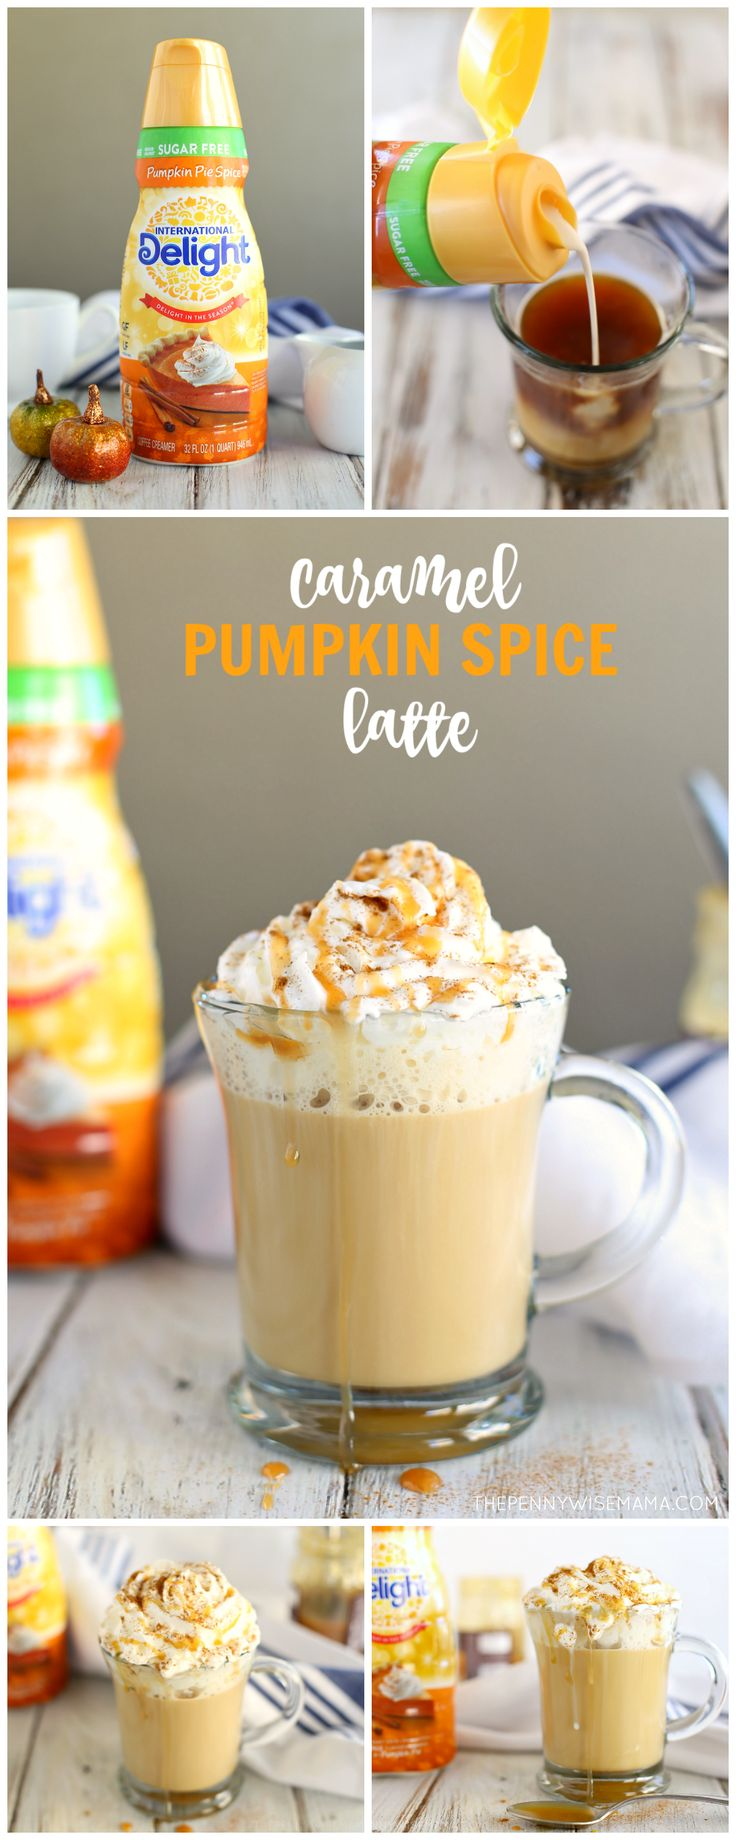 Love PSL's but hate the price tag? Check out this Caramel Pumpkin Spice Latte recipe for a tasty twist on the autumn classic!